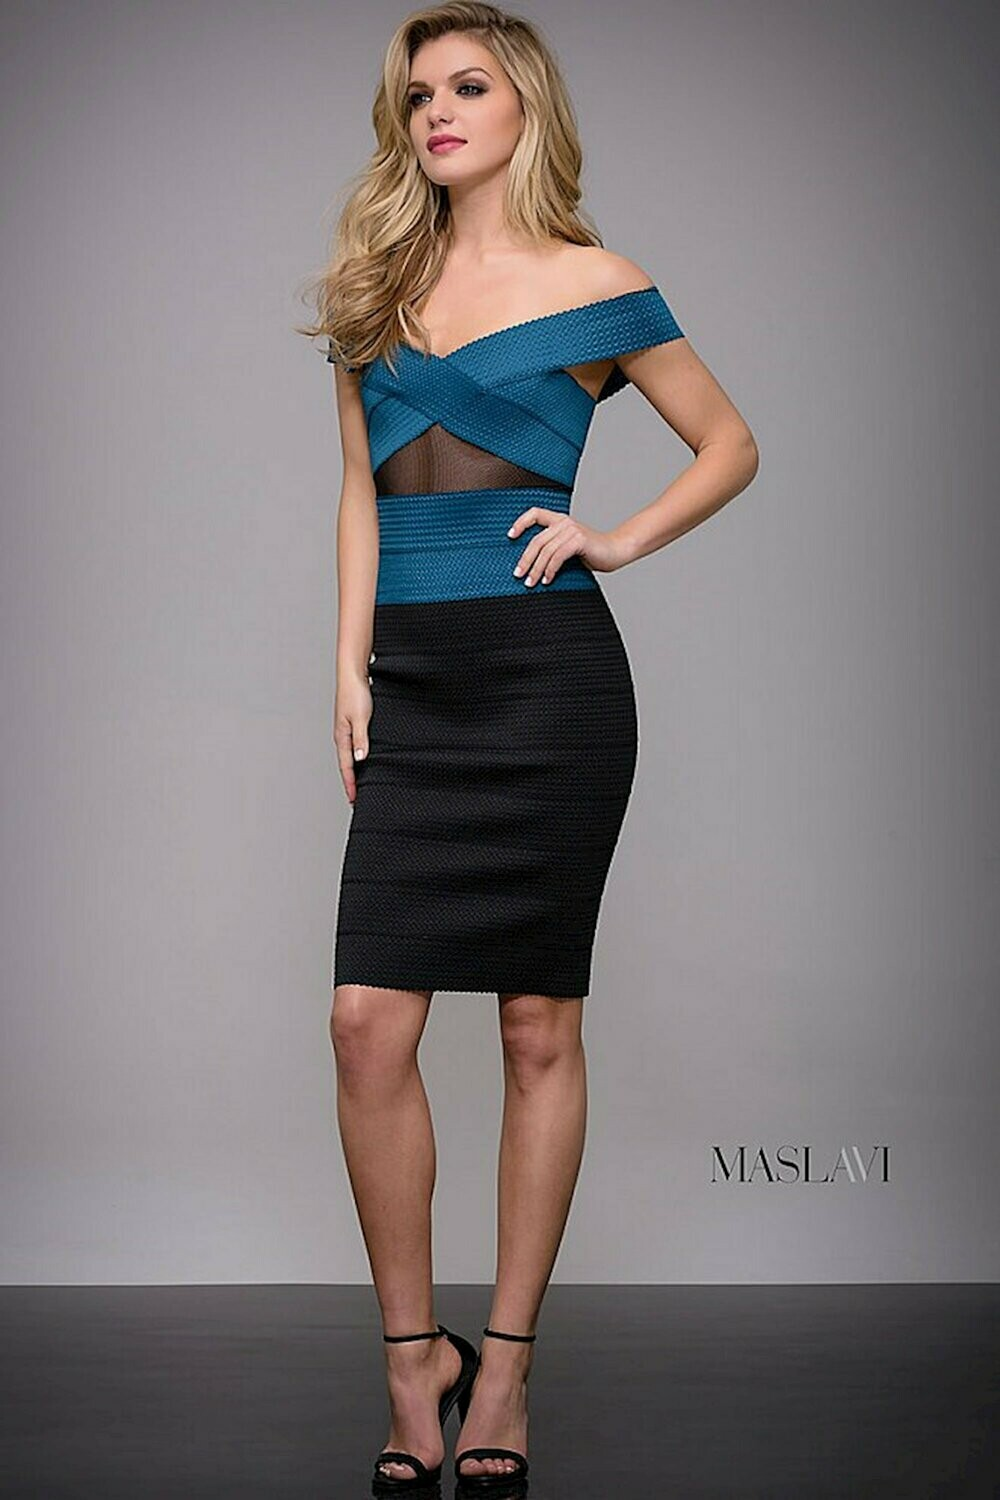 Jovani Off Shoulder Cocktail Dress in Teal and Black